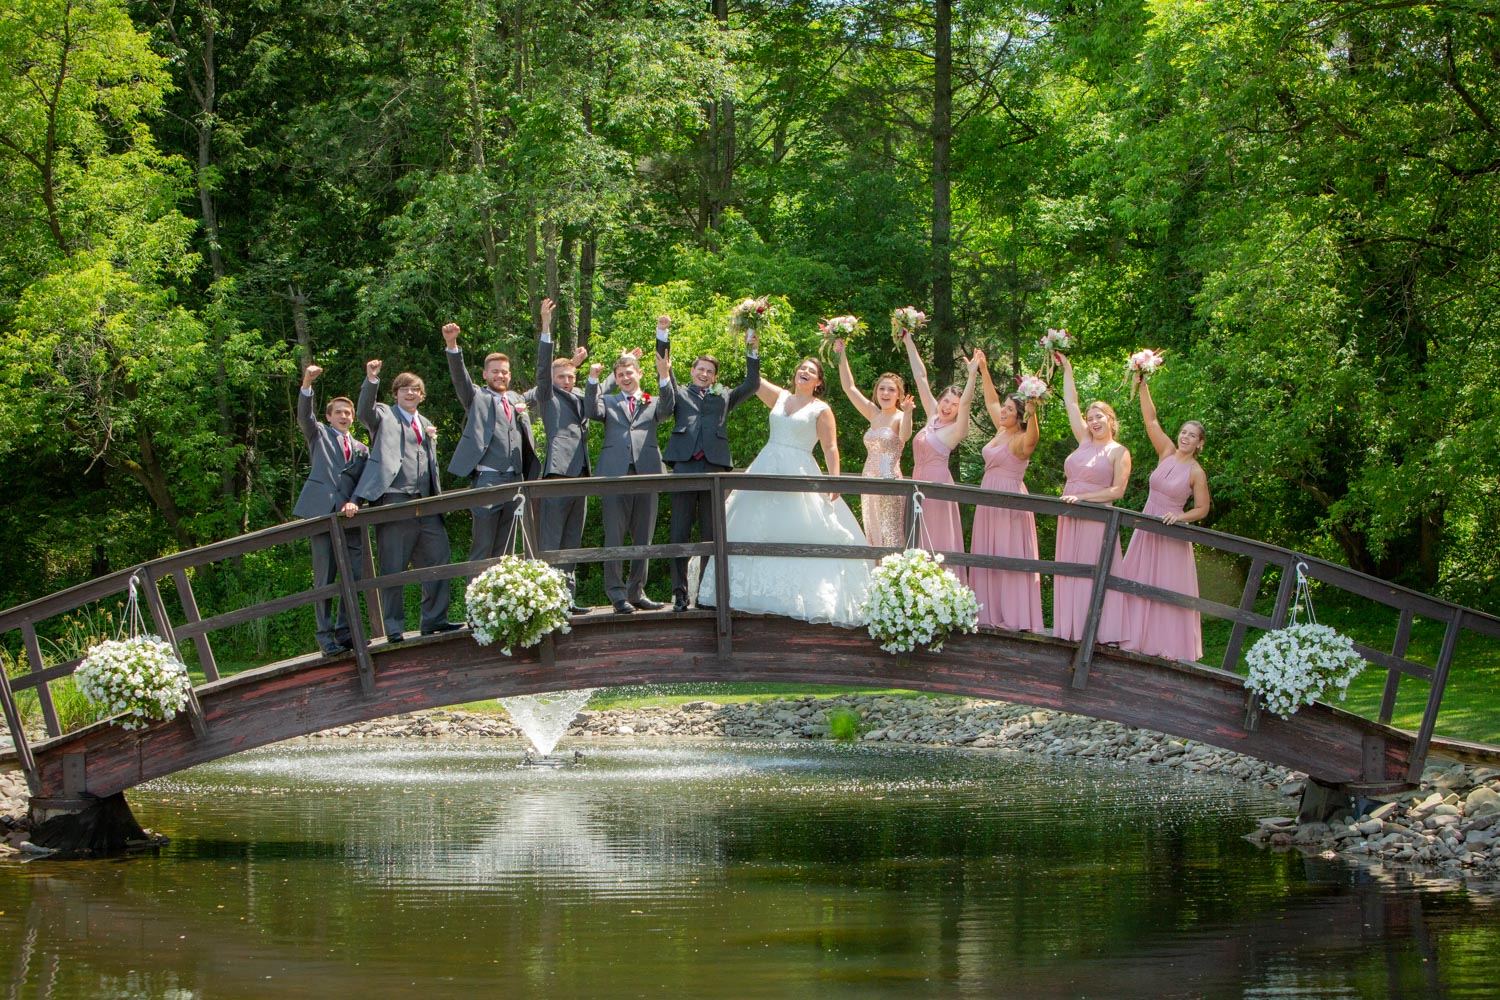 Finger-Lakes-Wedding-Photographer-Joe-Hy-Owego-NY-7239.jpg